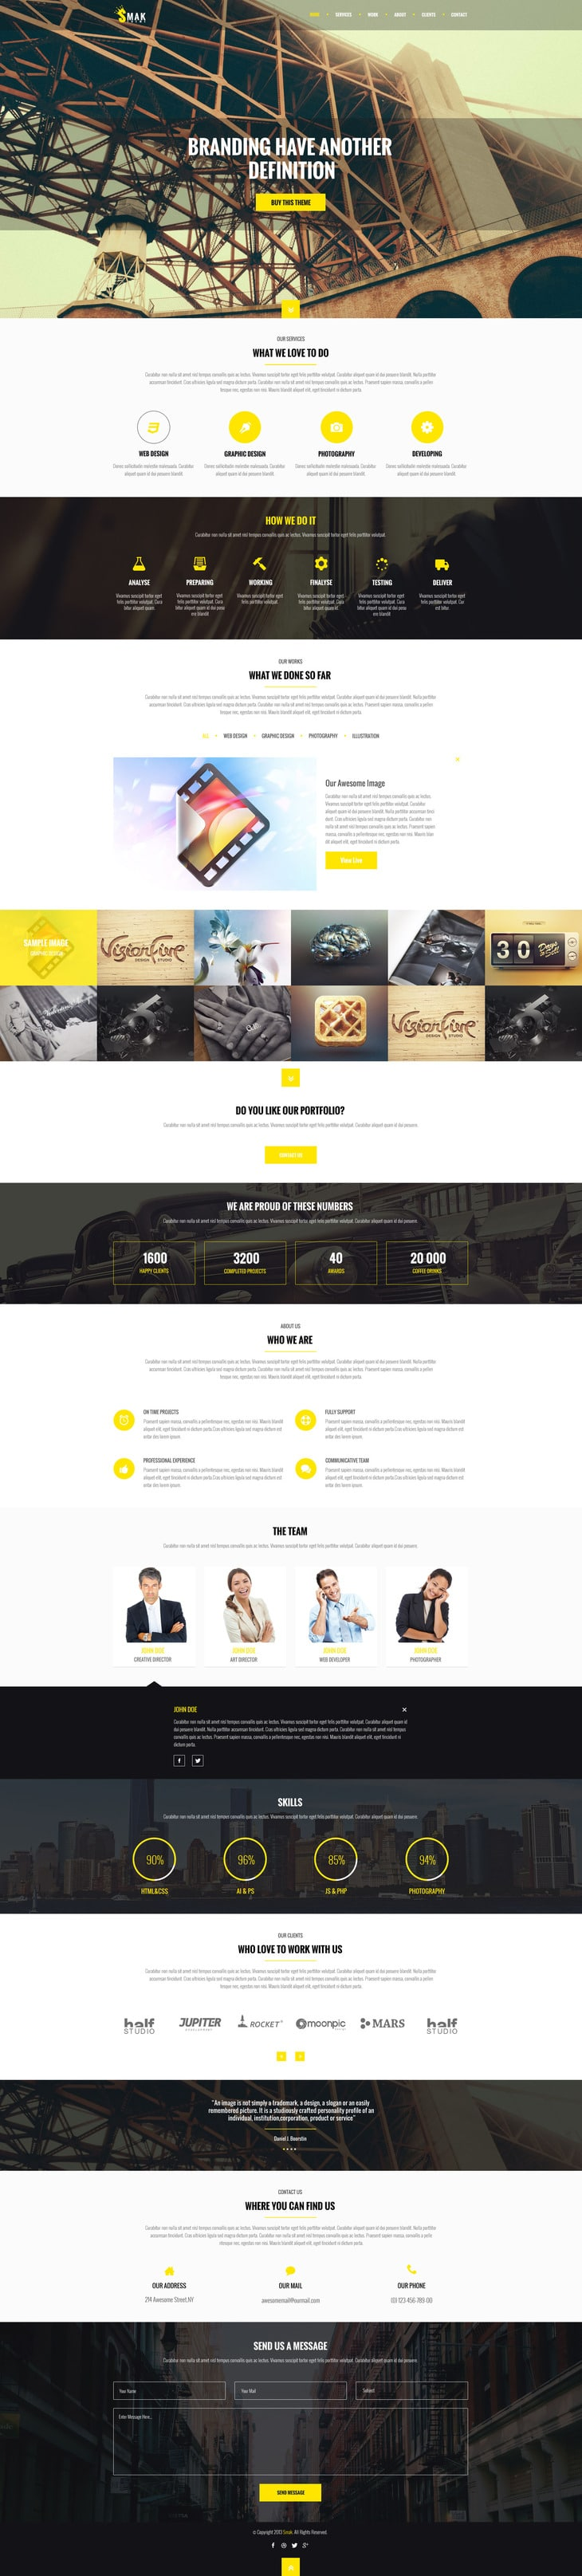 Excellent 10 Envelope Template Illustrator Big 10 Steps Writing Resume Flat 100 Day Glasses Template 1096 Form Template Young 15 Year Old First Resume Brown2 Column Css Template Free Single Page Website Templates PSD » CSS Author